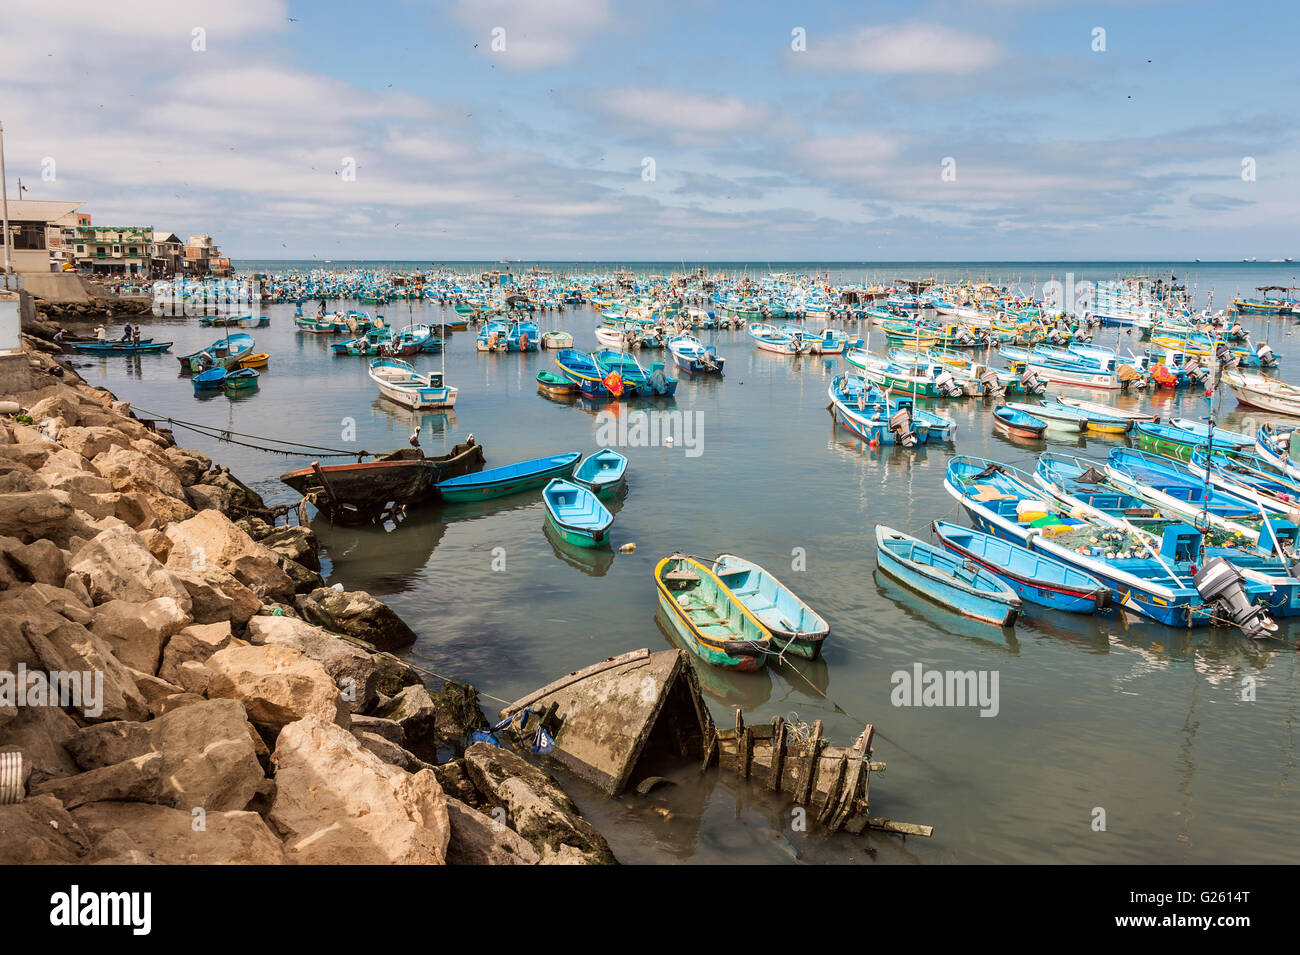 Salinas, Ecuador - September 17, 2011: Fishing boats crowded in the Bay of Santa Elena - Stock Image